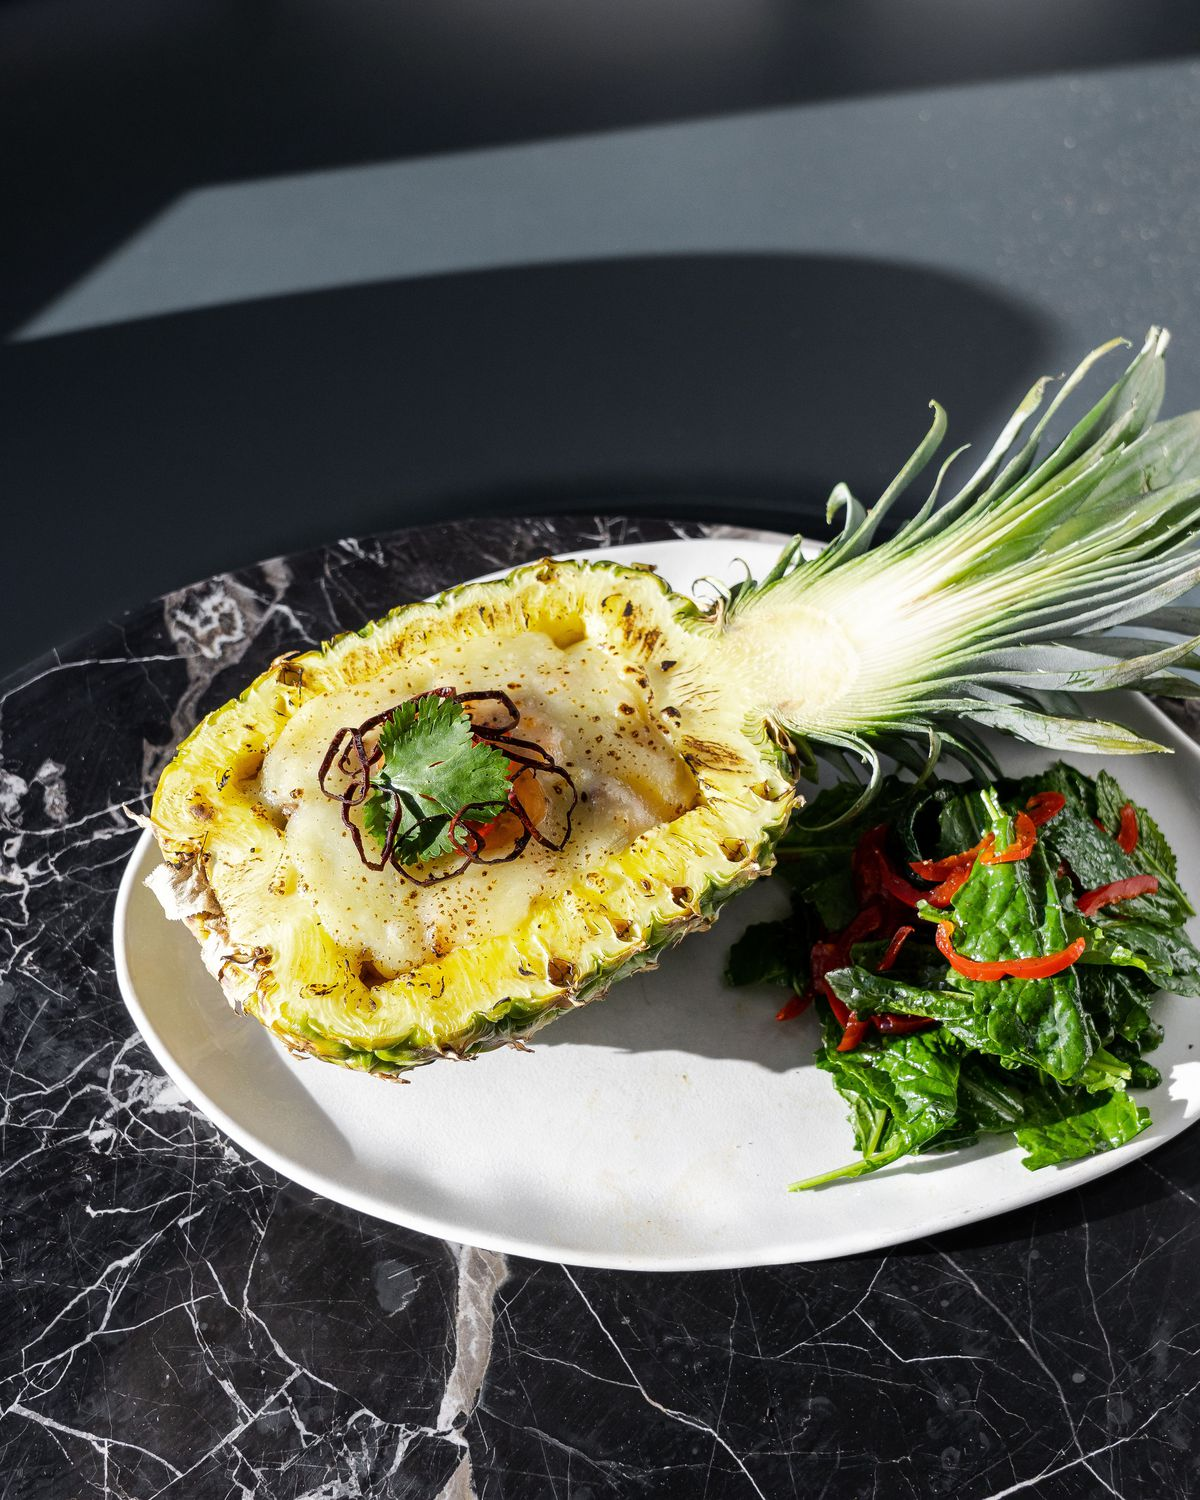 Baked stuffed pineapple with tenderloin strips from Paraíso